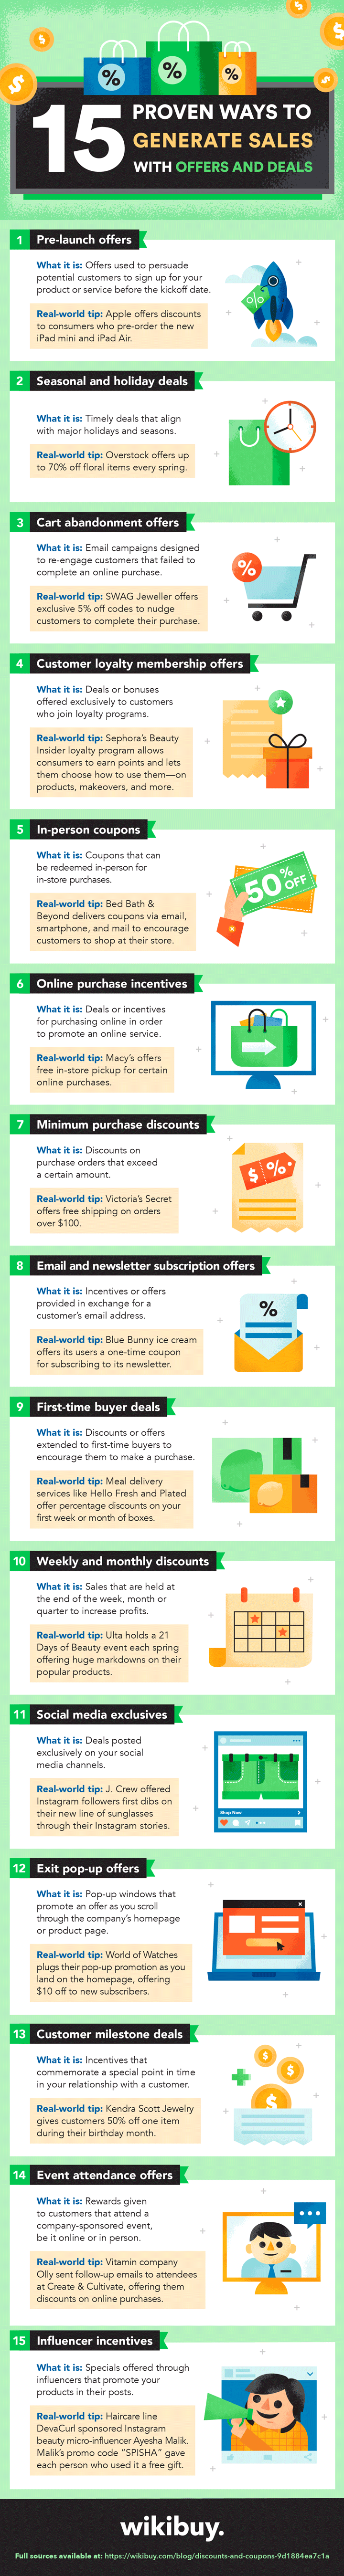 grow sales revenue using special offers infographic